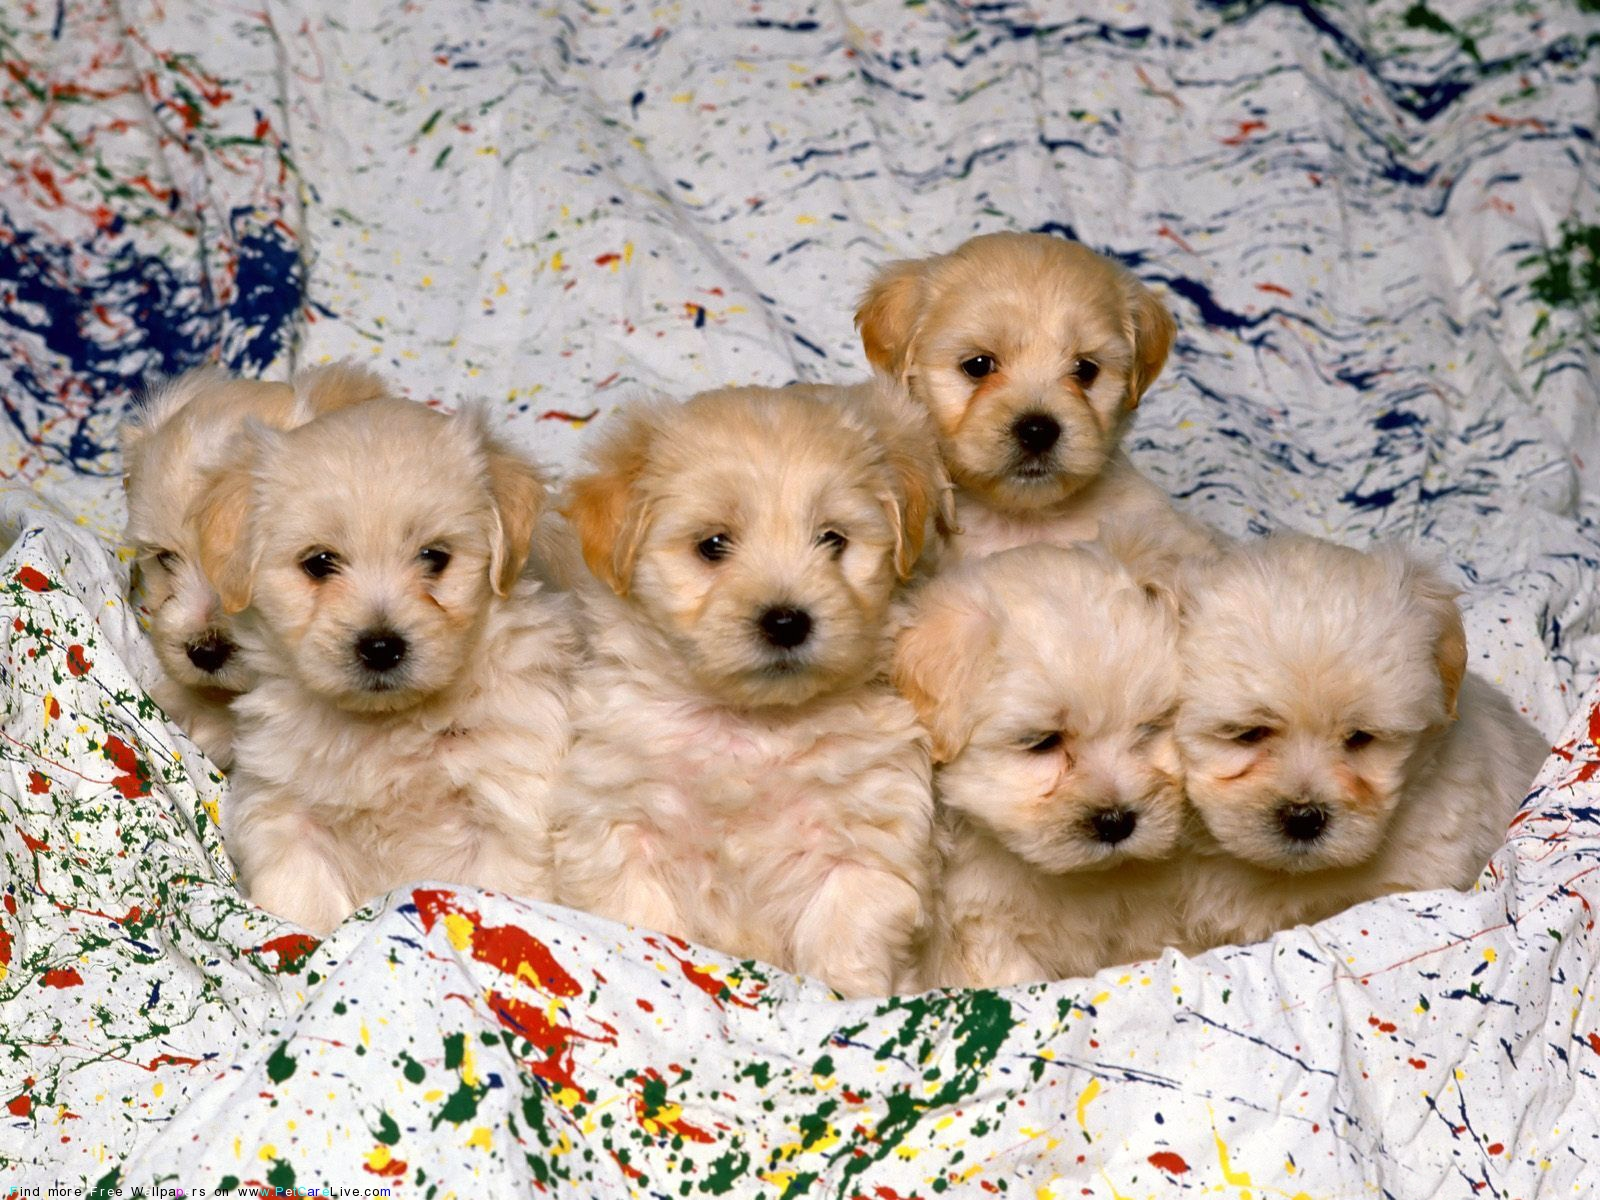 The Free Little Cute Dog S Puppies Desktop Wallpaper Pictures For Pc Mac 36